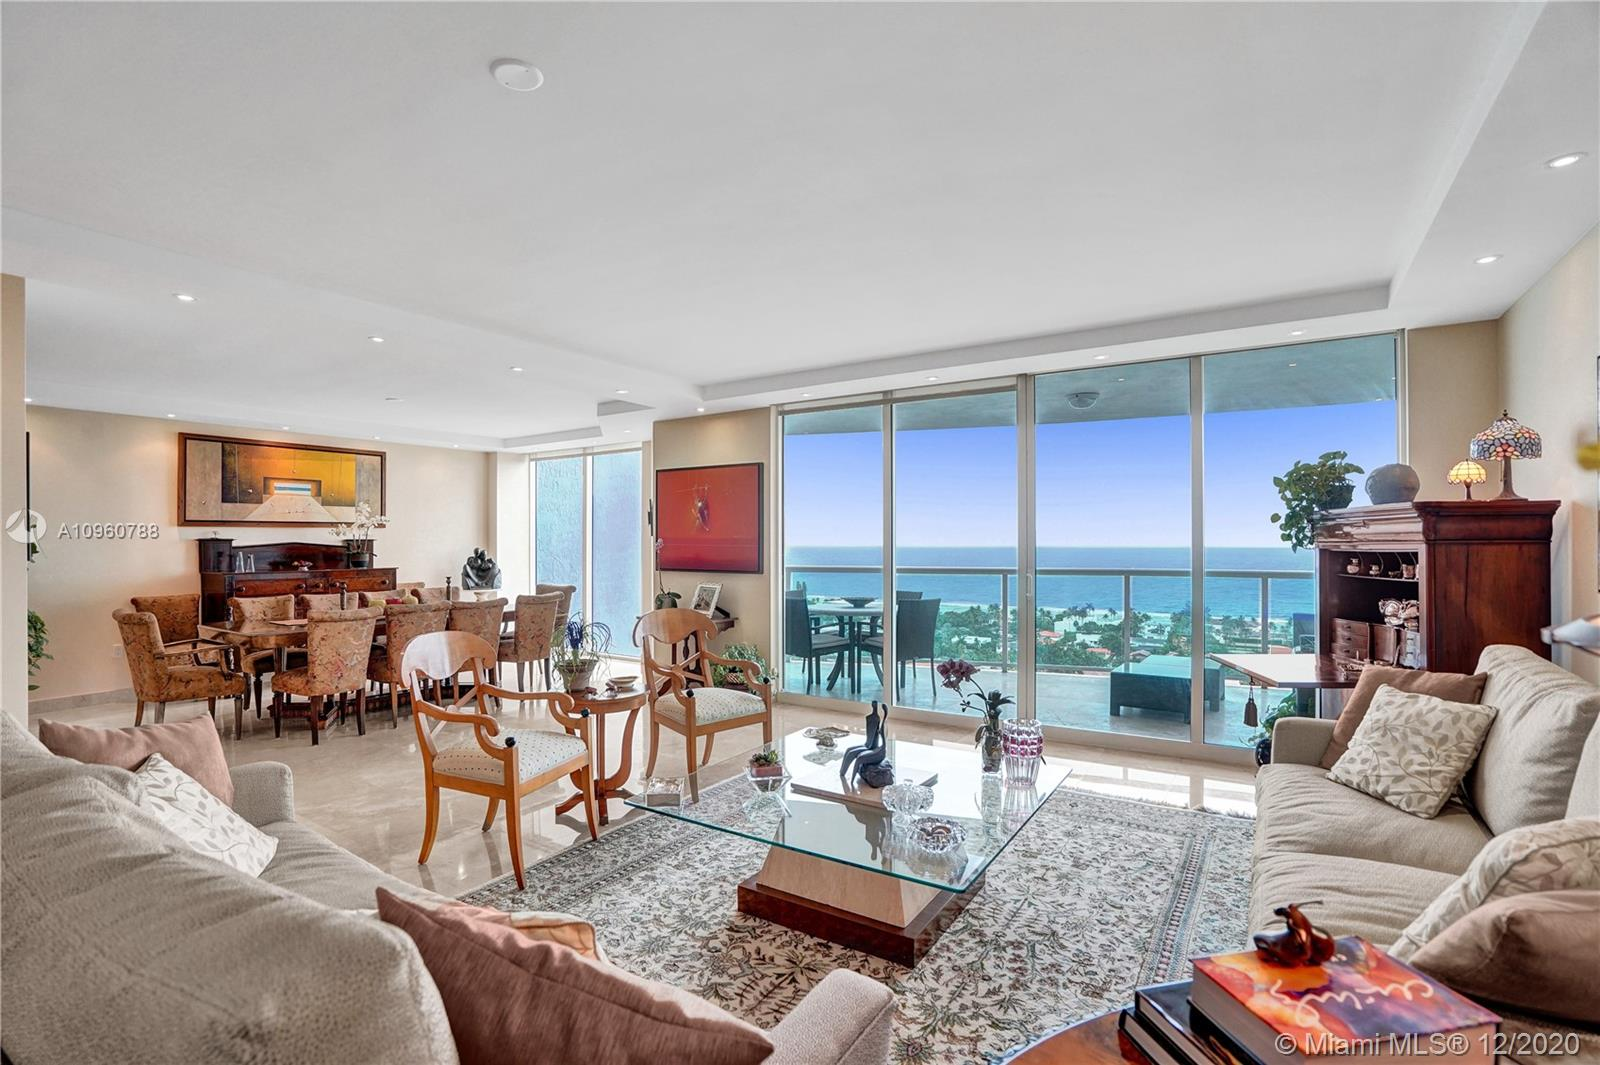 Luxury living, totally unobstructed views! The views of this unit are spectacular. Ocean and intracoastal  in the front golf course lake and city in the back. This 2 bedroom + den/TV room, 2.5 bathrooms has beautiful woodwork. Built in bar with extra storage, huge walk-in closets and a separate workshop room. Marble and wood floors and a huge laundry room. Private elevator. Infinity pool, movie theater with 100 seats, BBQ area, tennis courts, internet café, kids room. On site exclusive restaurant. Only 5 minutes to the beach. 3.5 mile bike and walking path across from the property. Easy to show. Call or text listing agent.